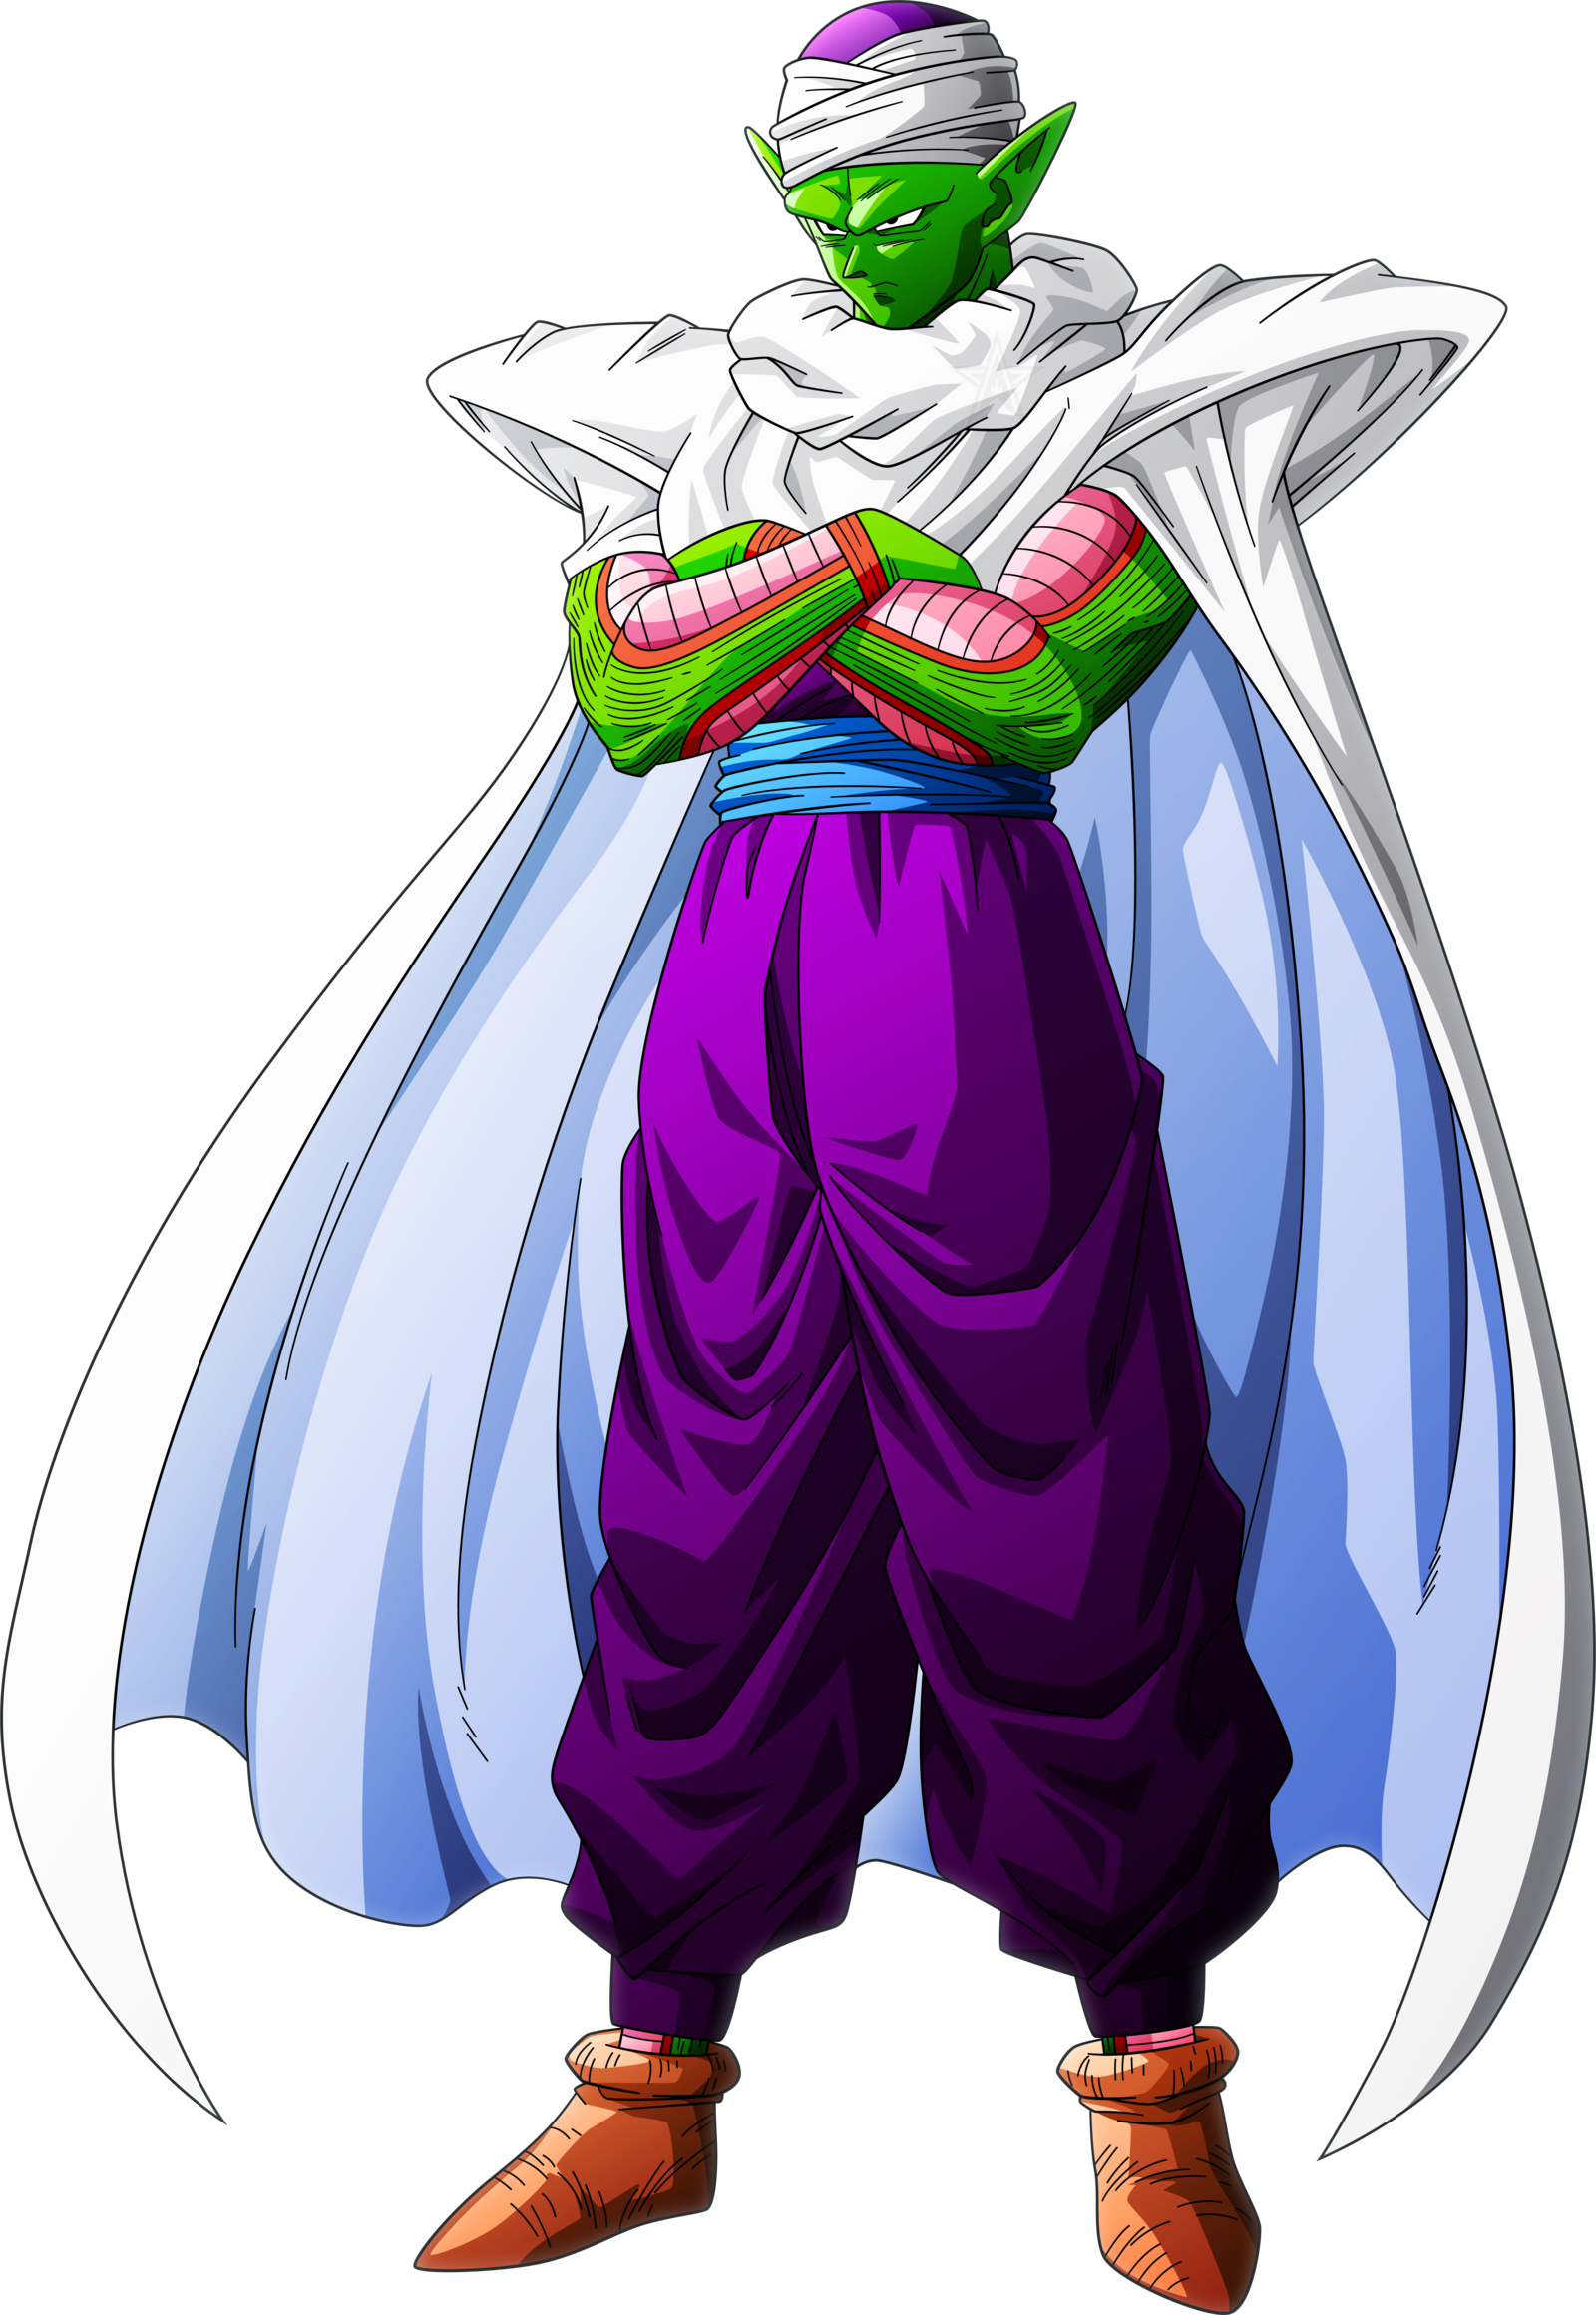 Piccolo bape png. Image fanfiction characters wiki